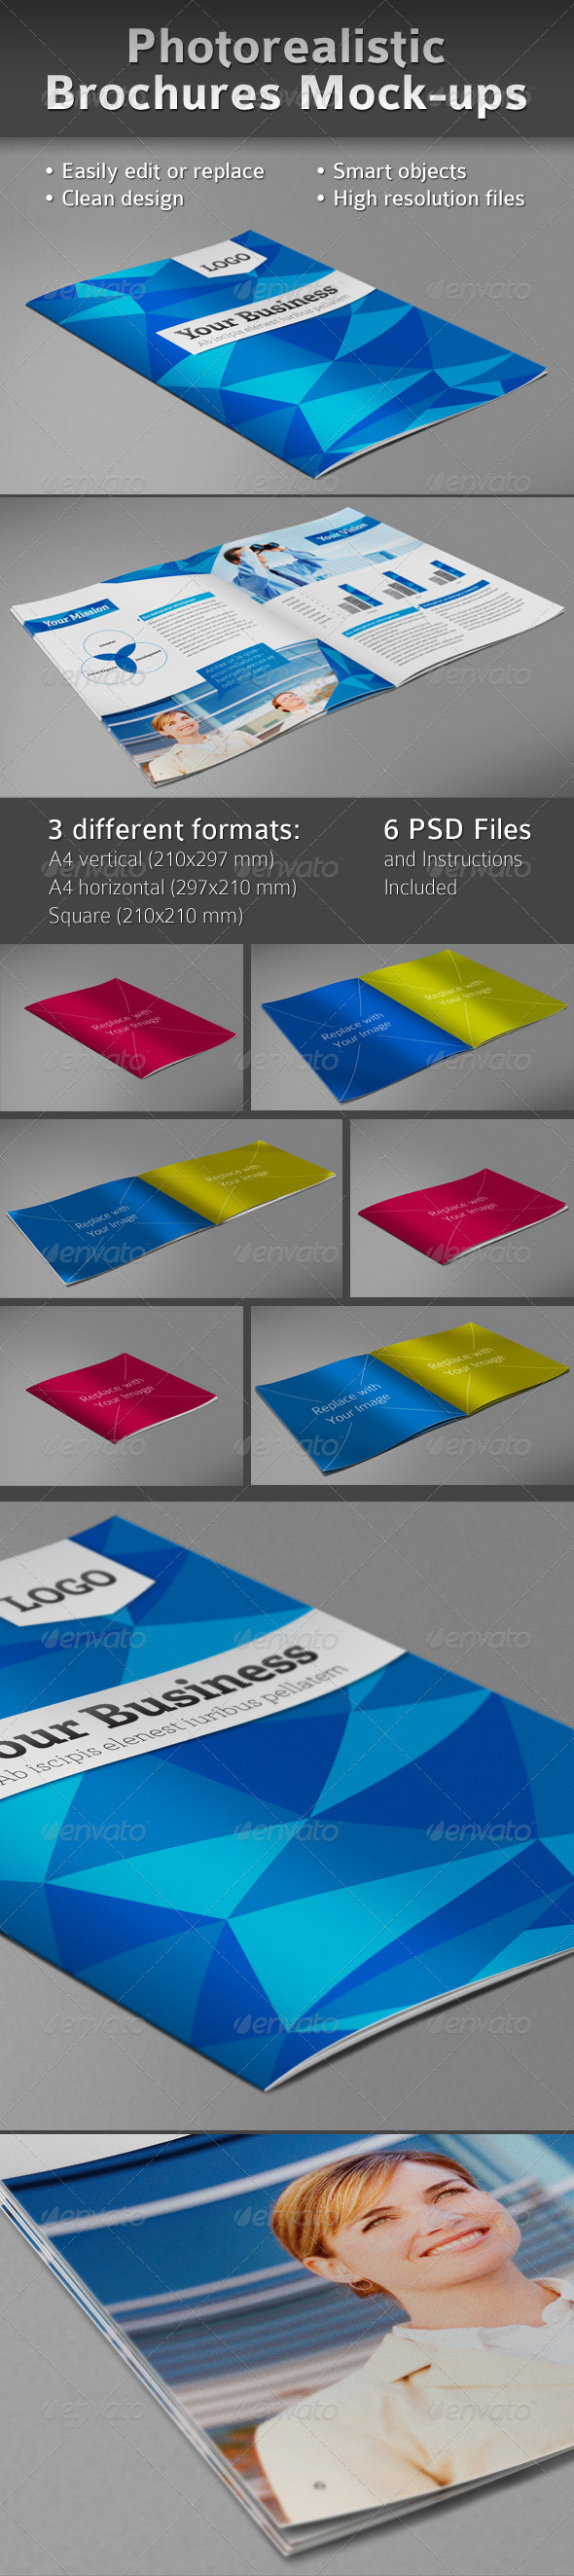 GraphicRiver Photorealistic Brochures Preview Mock-ups 761926